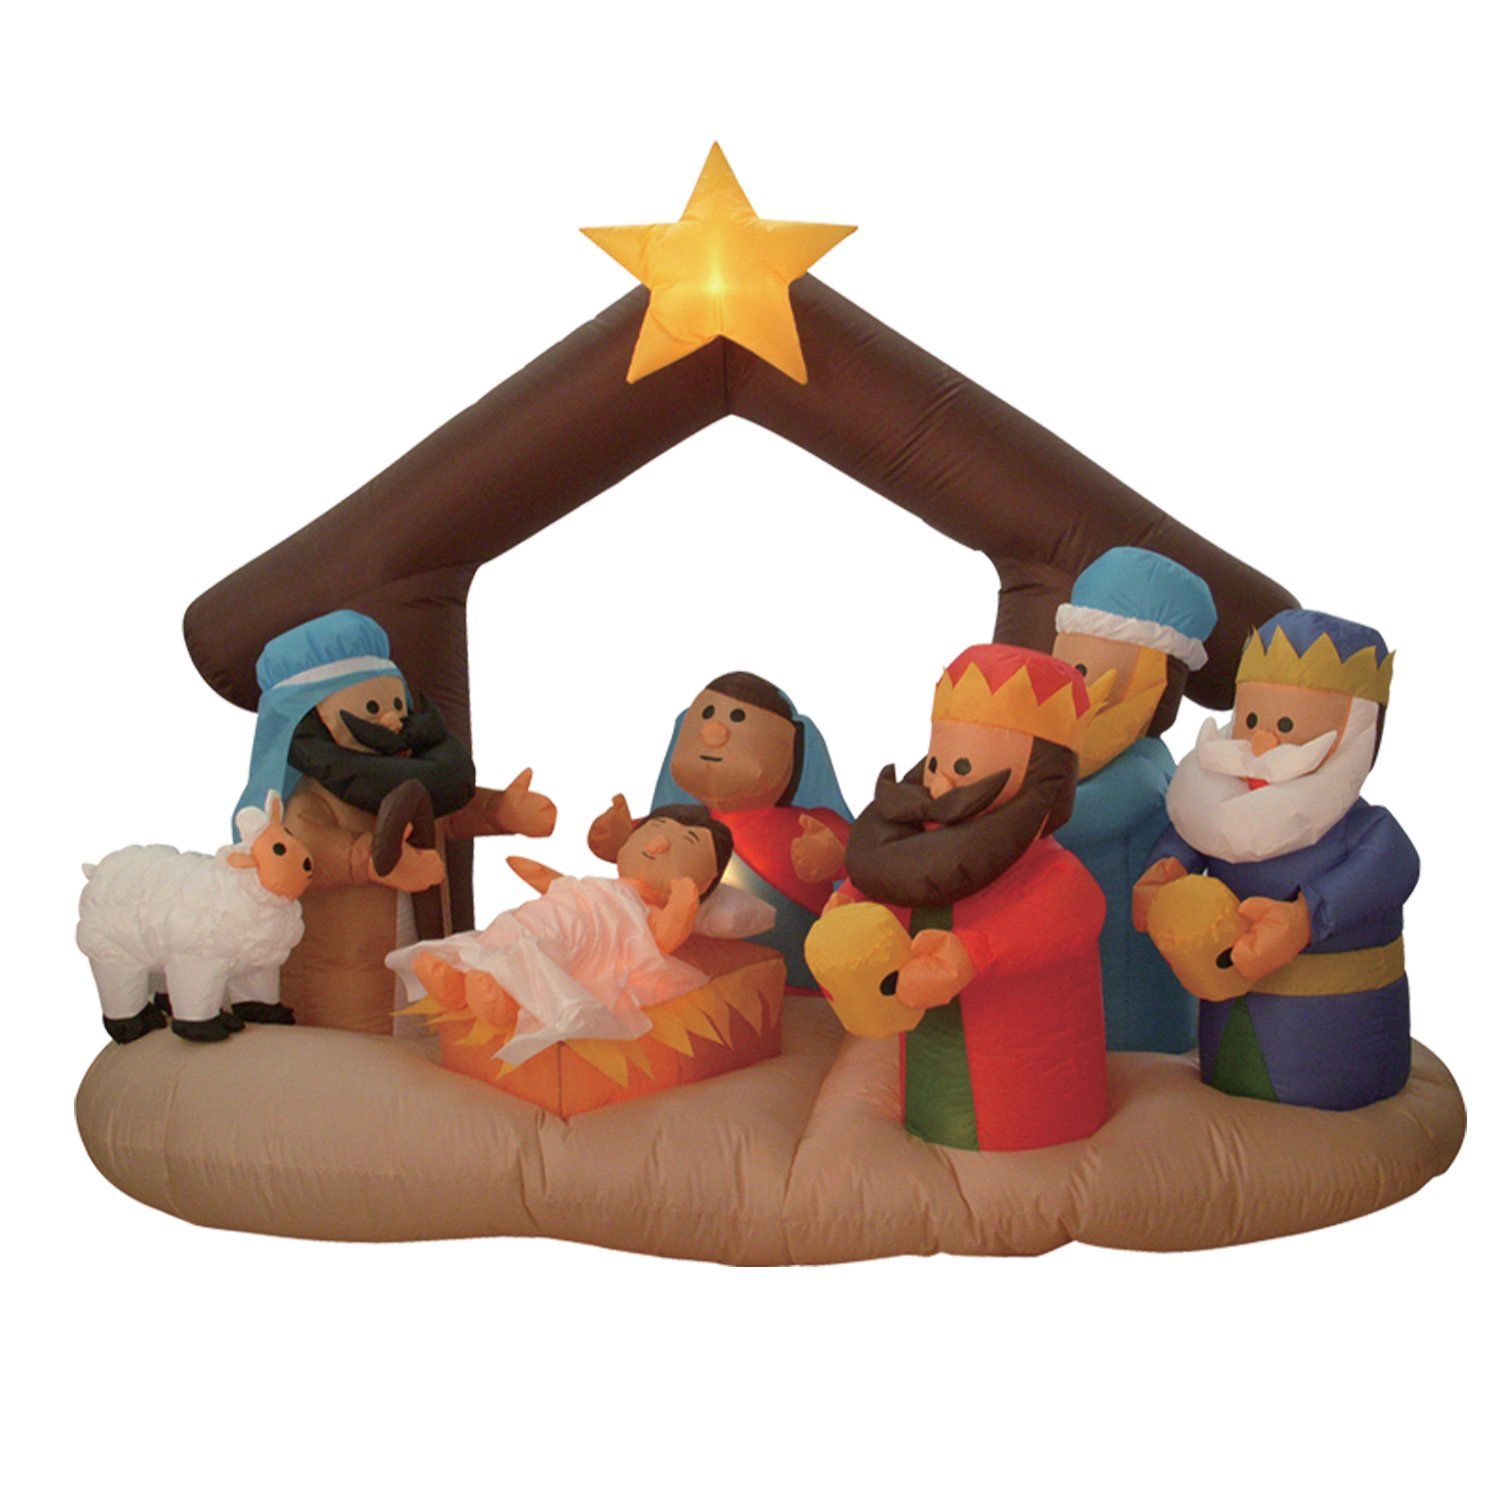 amazoncom 6 foot christmas inflatable nativity scene with three kings party decoration home kitchen